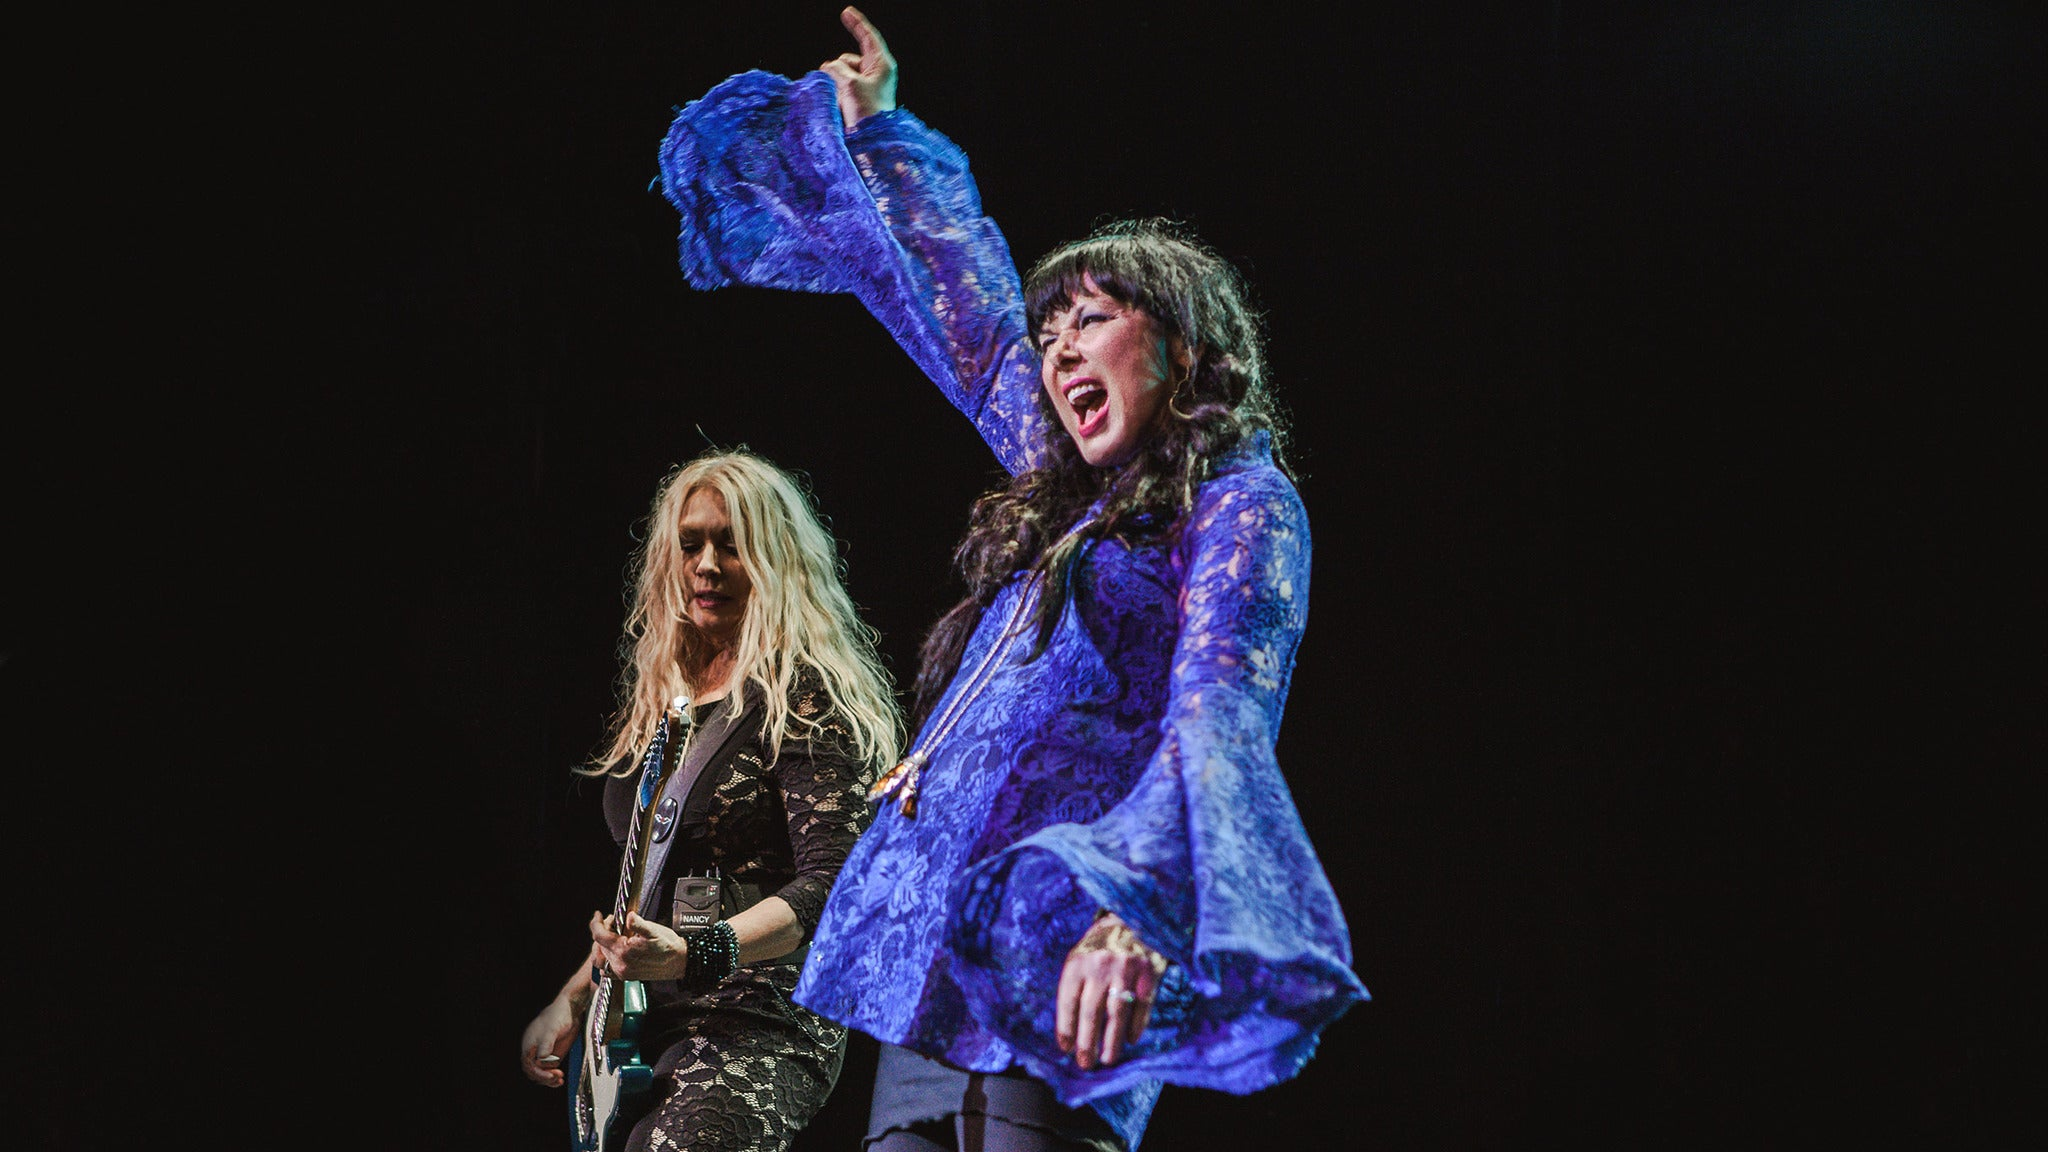 Heart: Love Alive Tour at Concord Pavilion